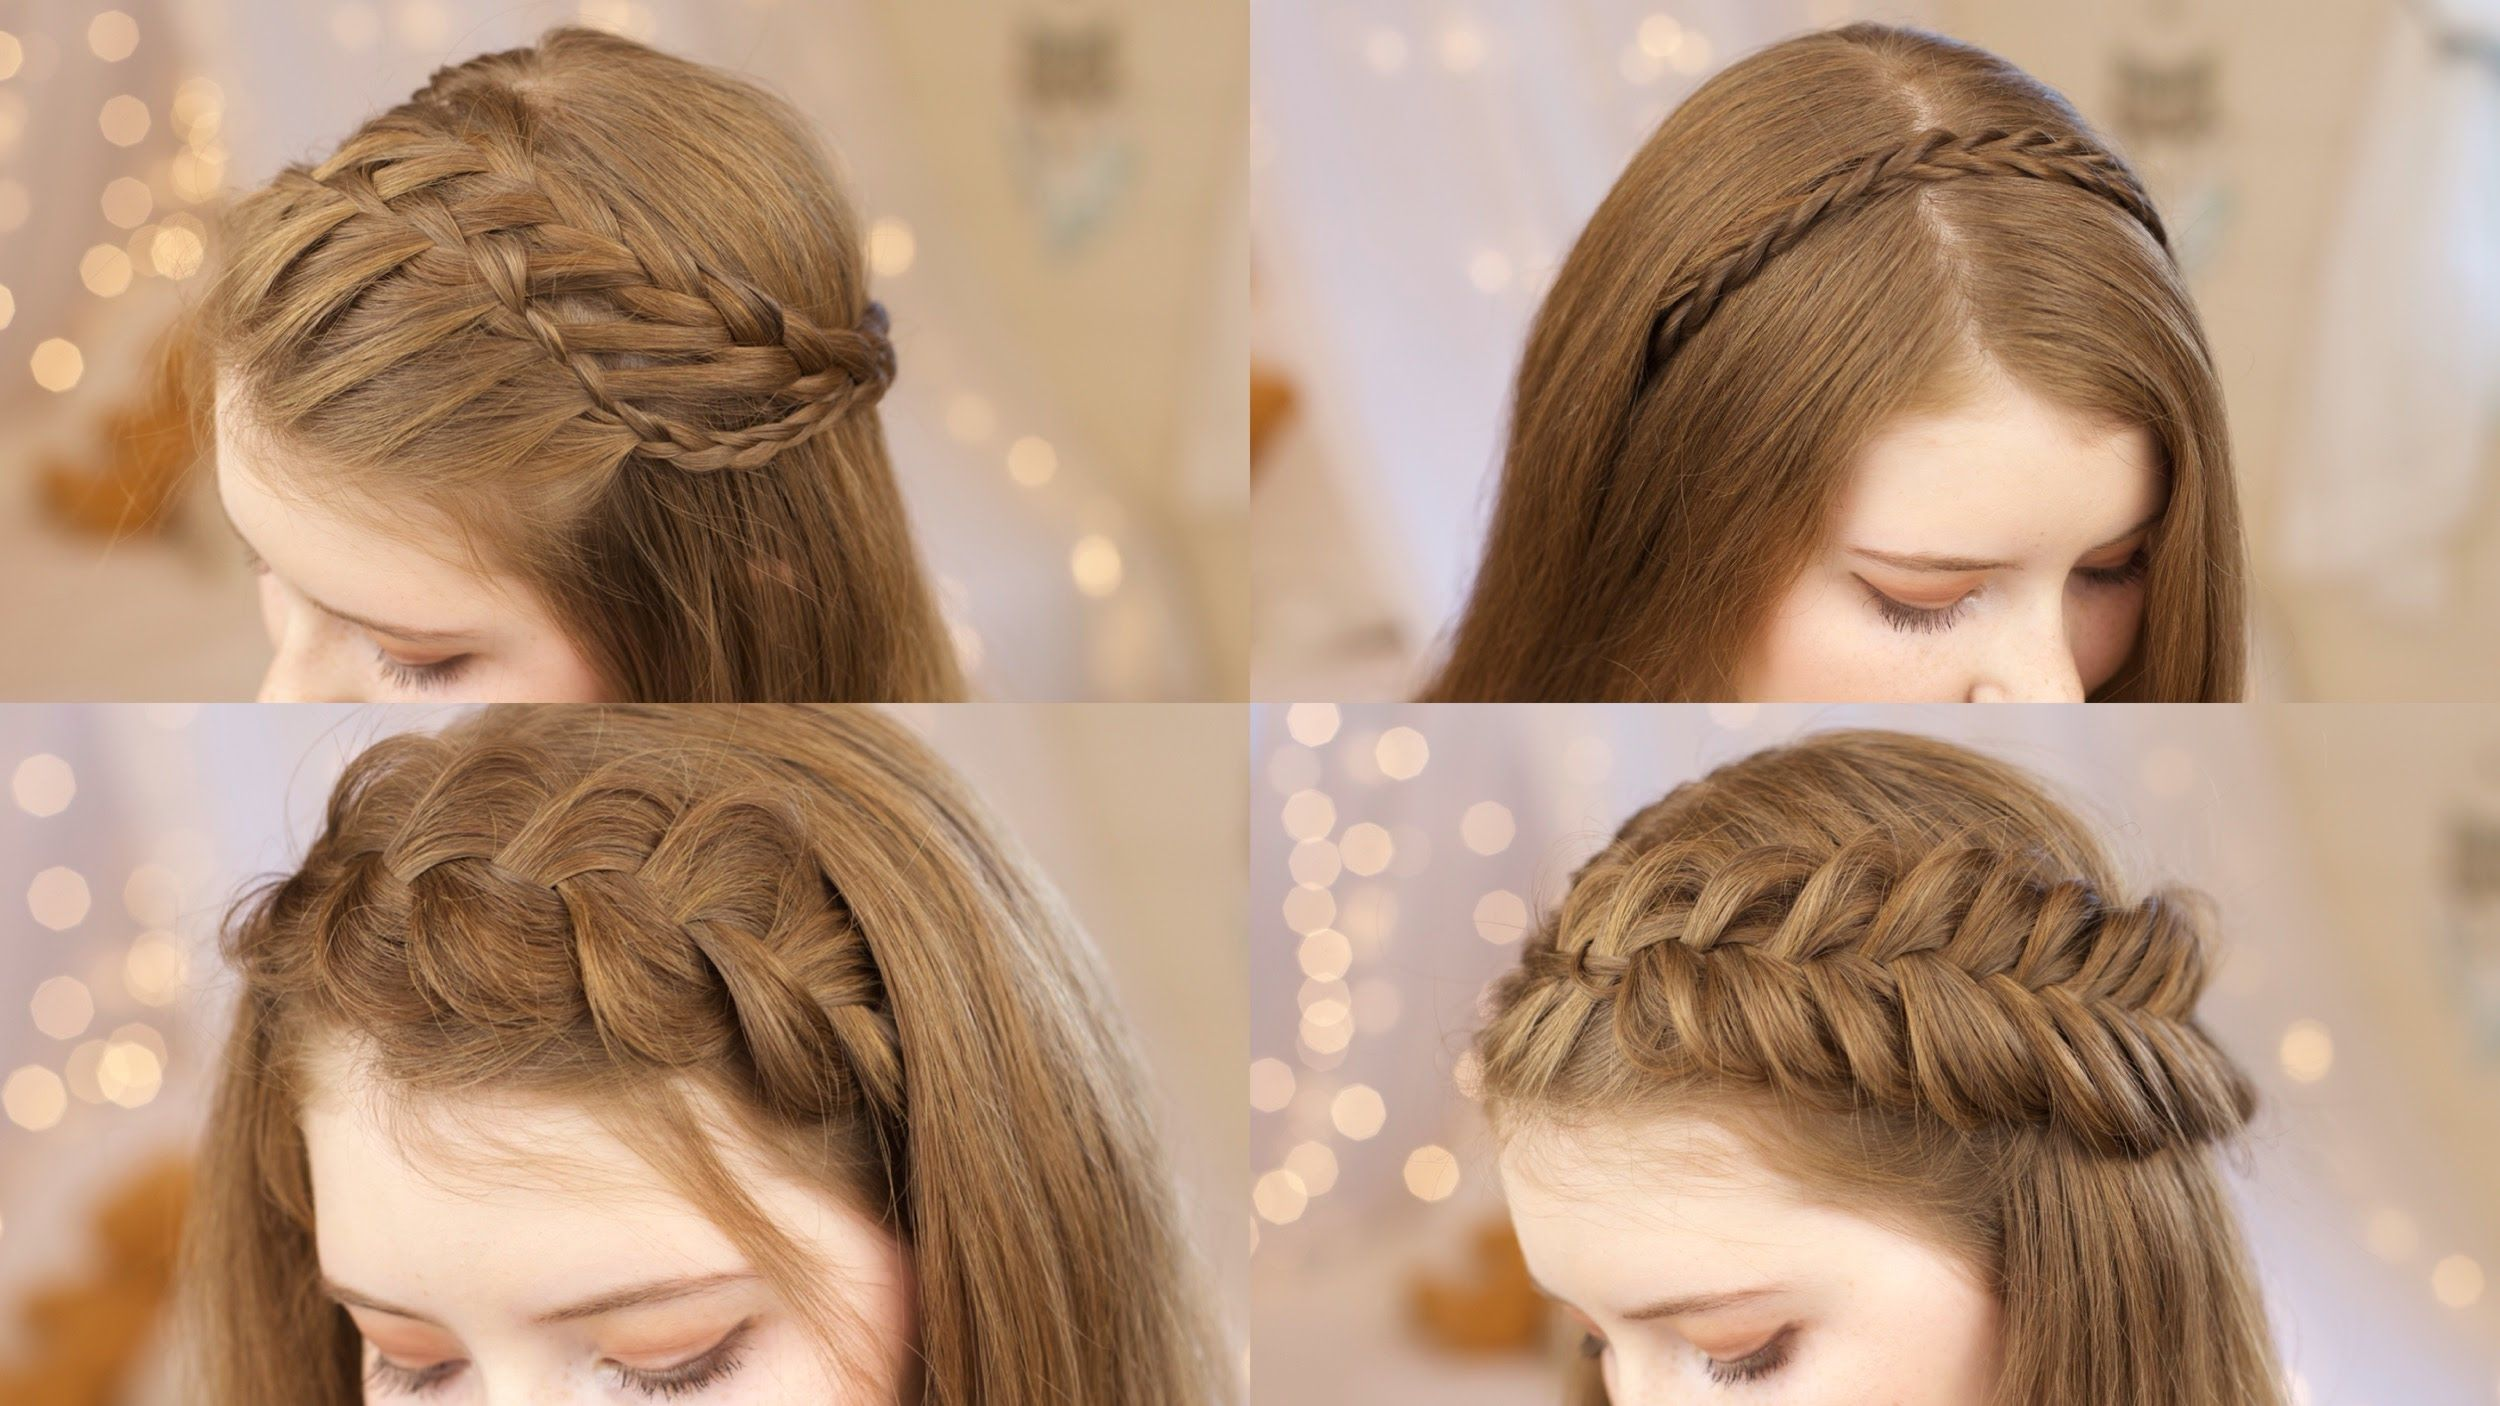 2 Minute Hairstyles 5 Headband Braids  Back To School Hairstyles  Braids And Bows